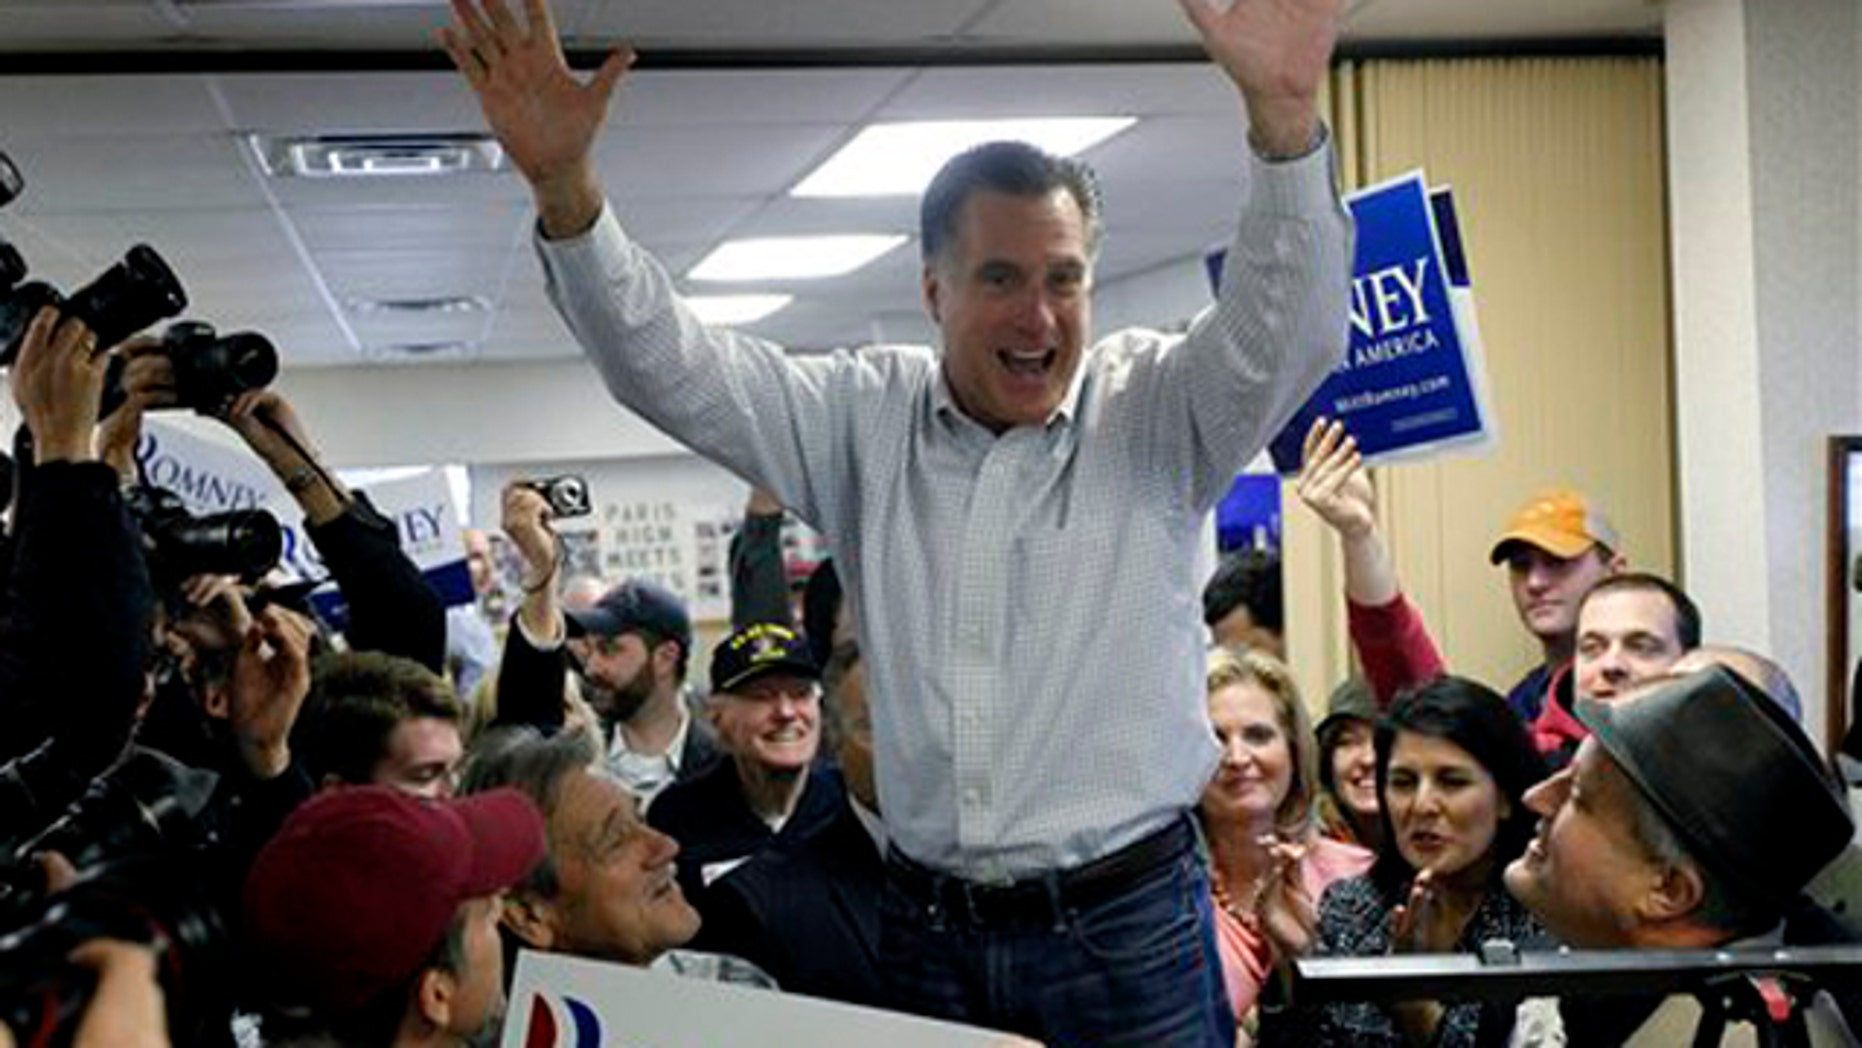 Jan. 21, 2012: Mitt Romney campaigns at Tommy's Country Ham House in Greenville, S.C., on South Carolina's Republican primary election day.